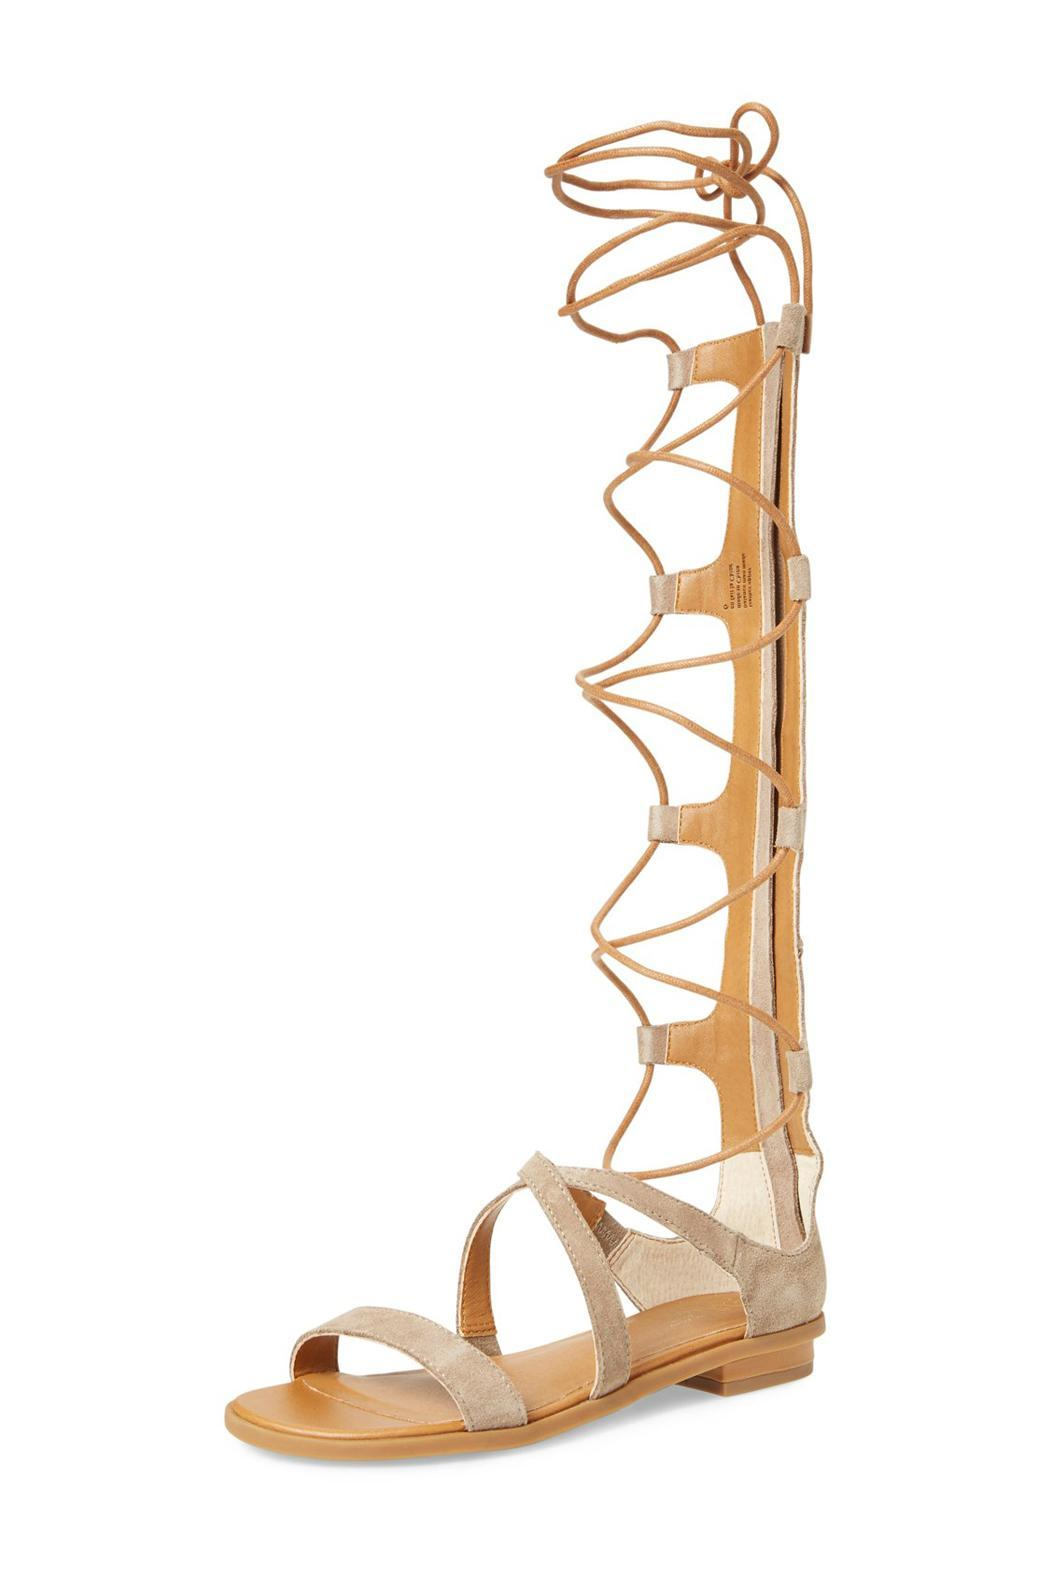 a9cfd35f3a3 Seychelles Enterprise Gladiator Sandals from Park City by Mary ...